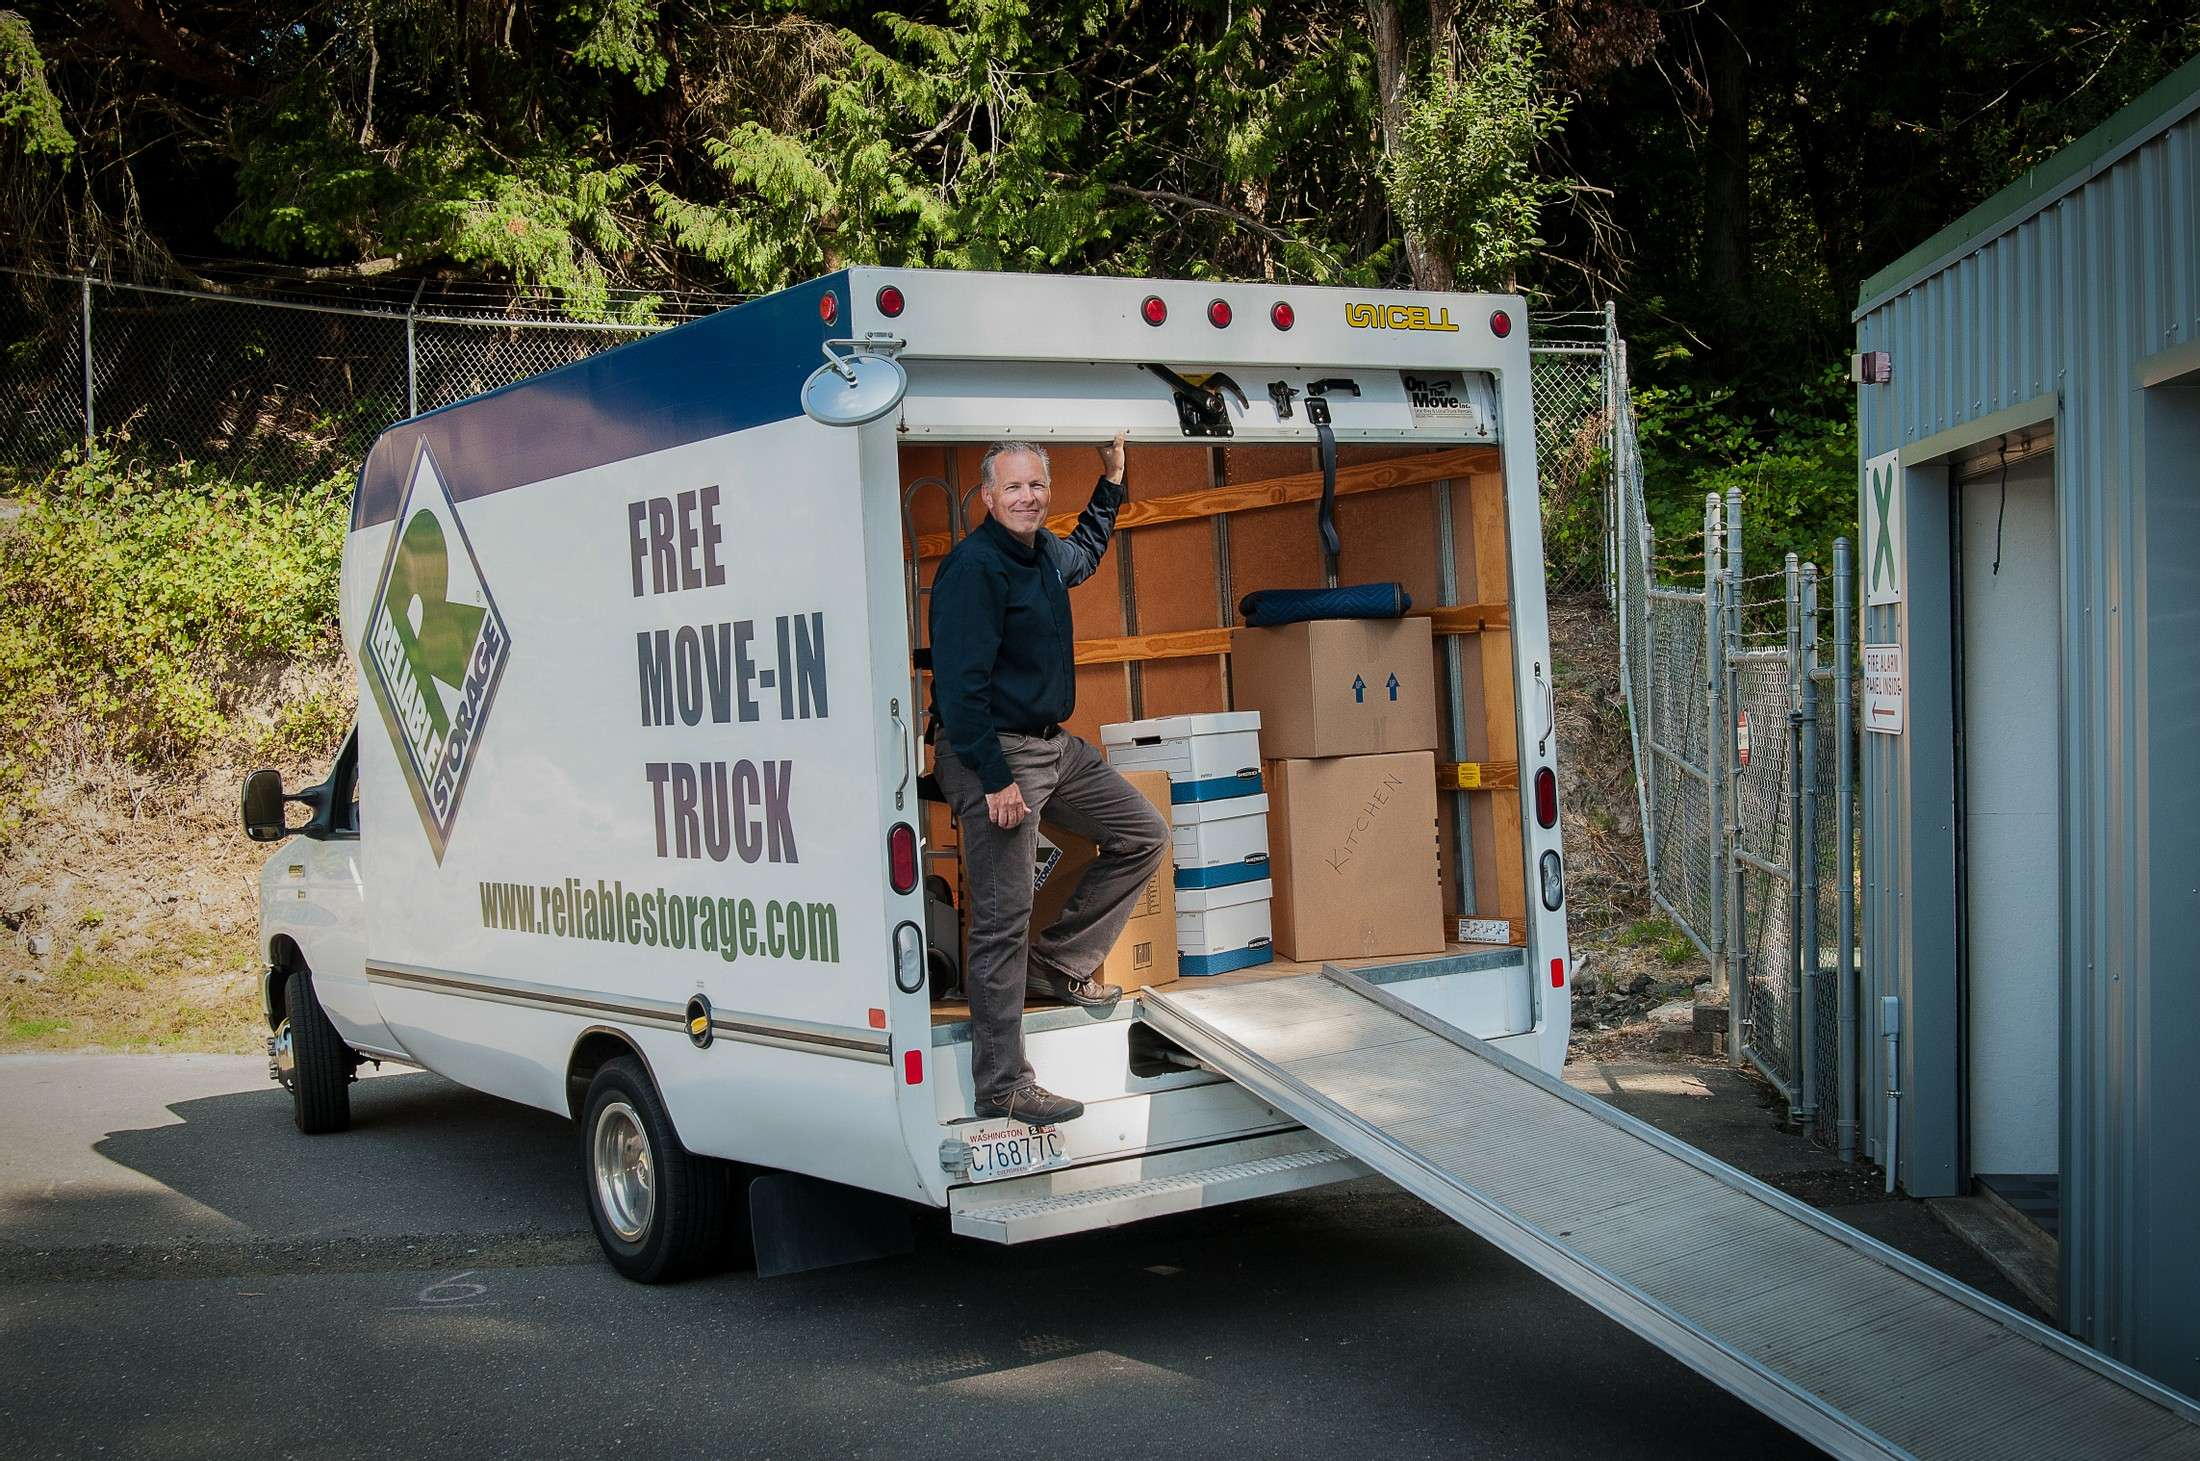 Reliable Storage Unloading Free Move-In Truck